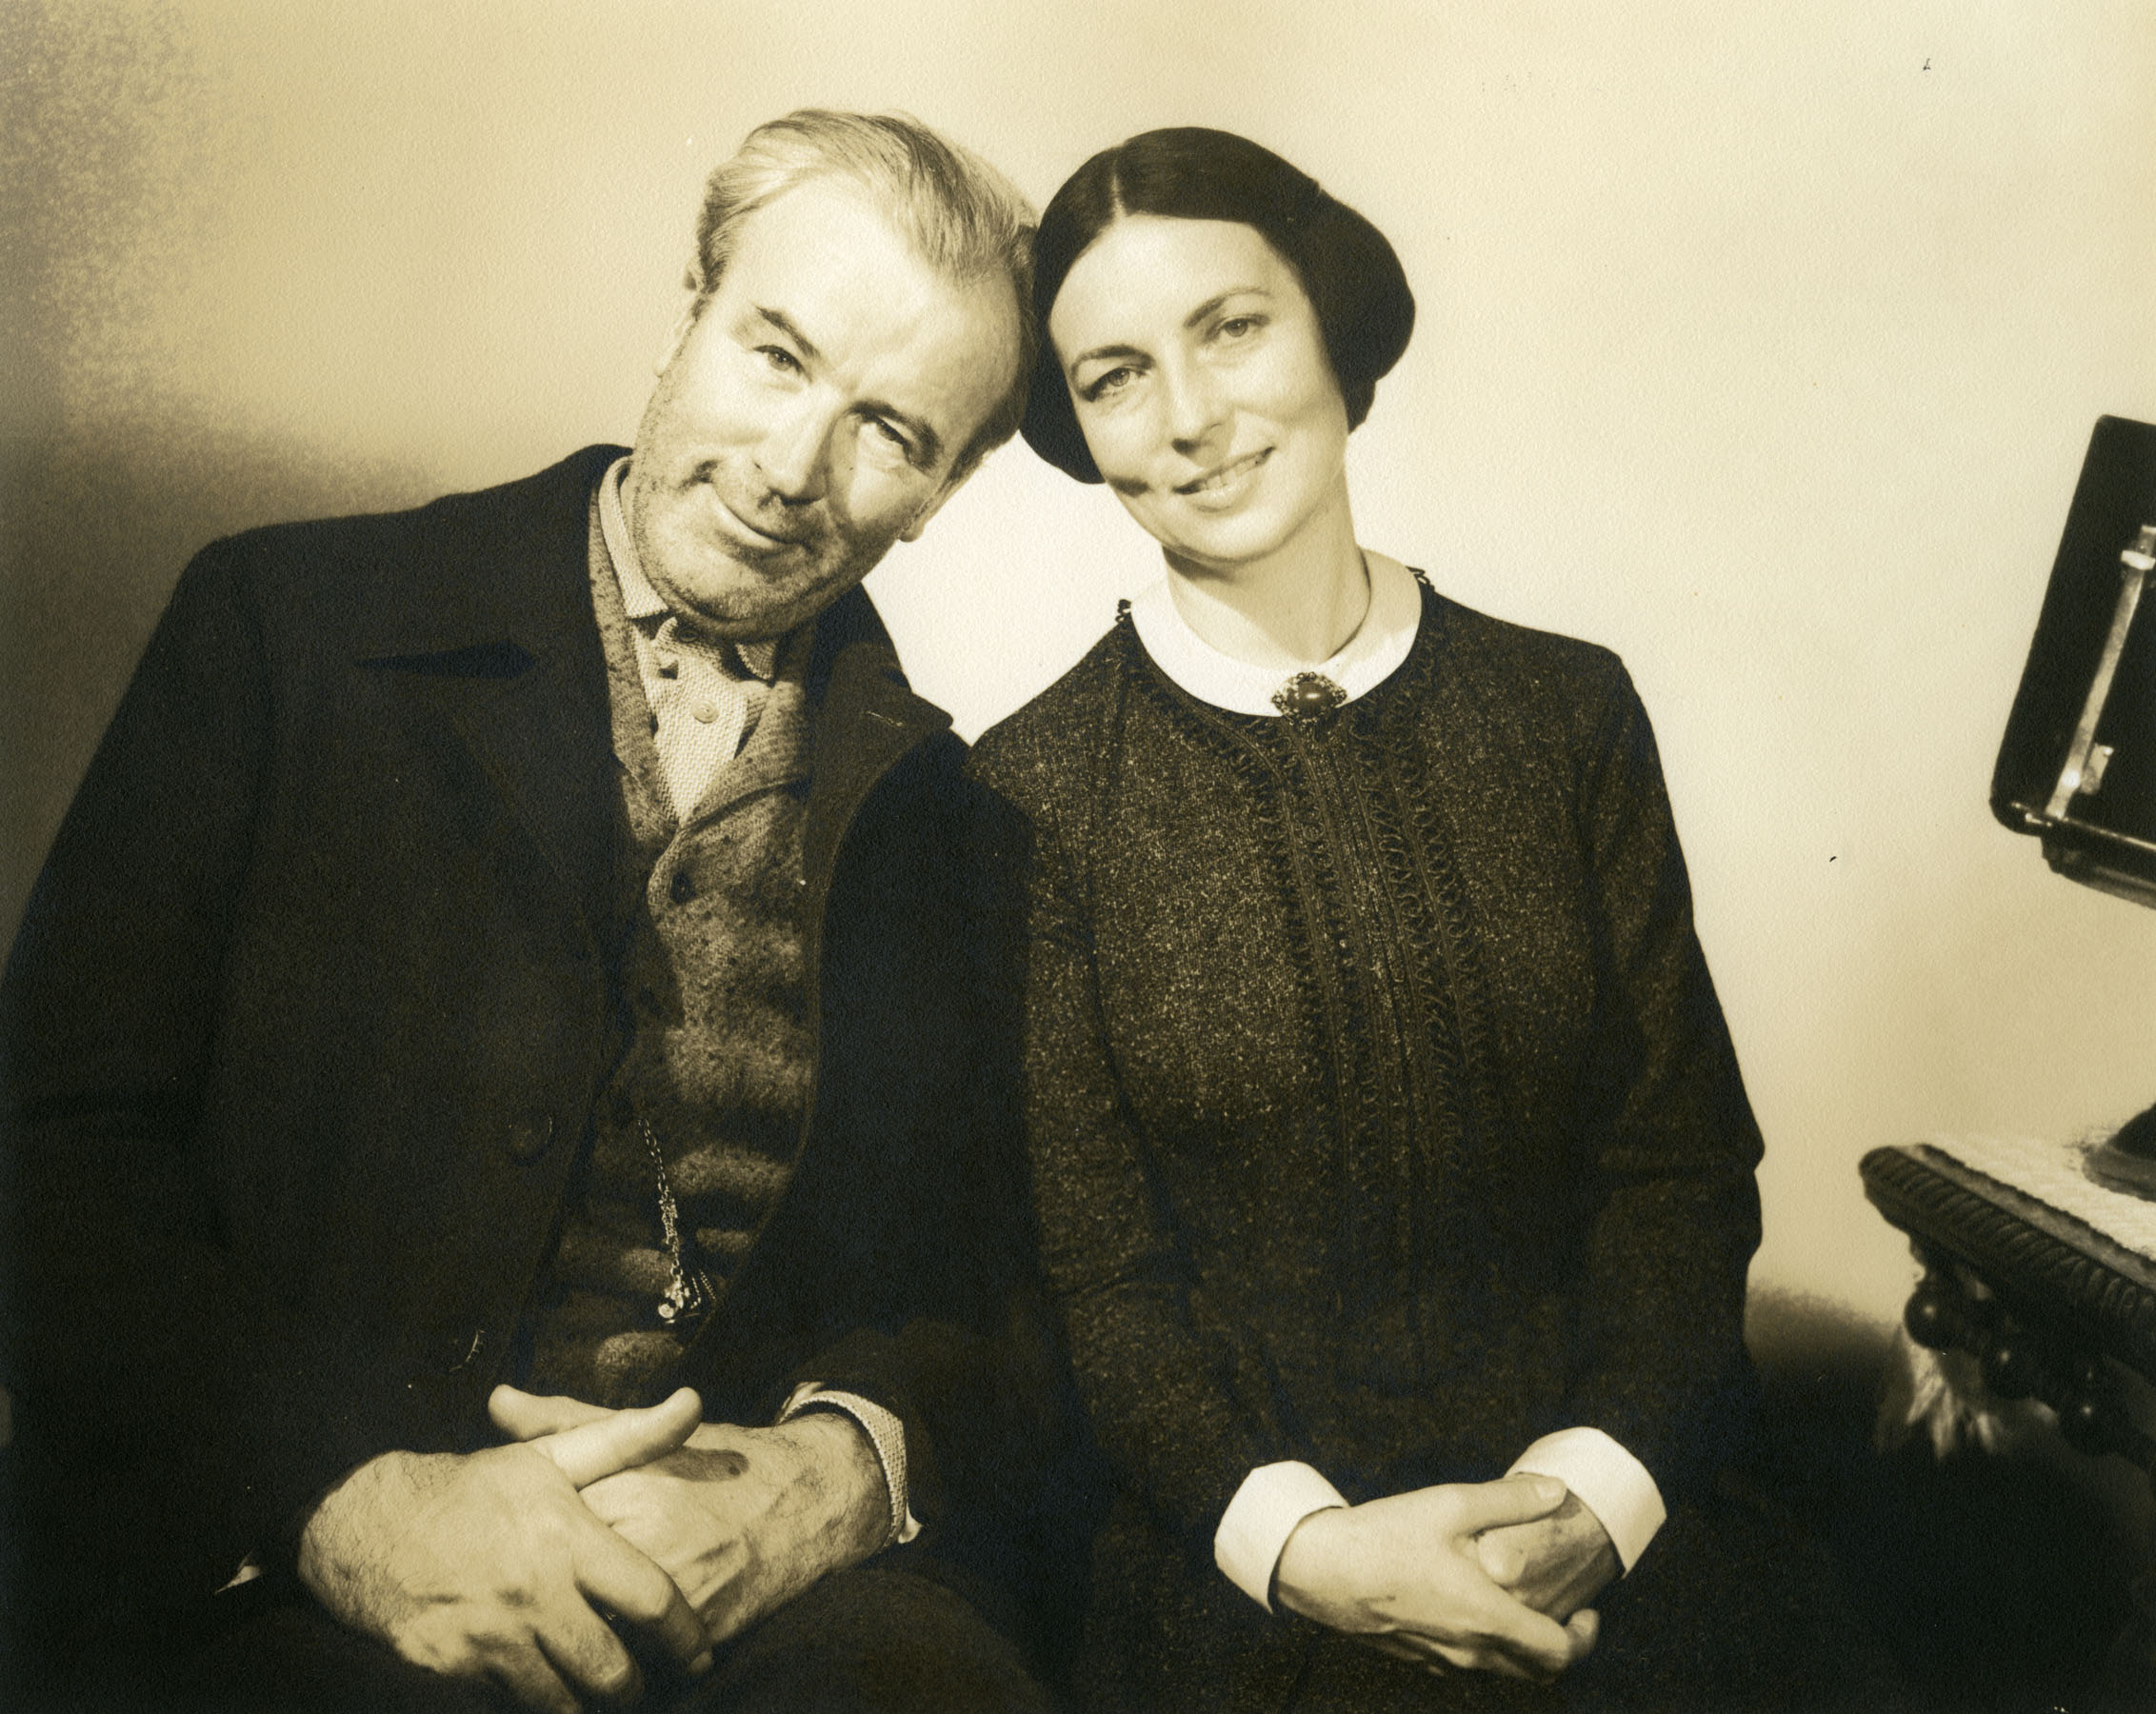 Harry Shannon (Kane's father, left) and Agnes Moorehead (Mary Kane, right) in a portrait that may have originally been created for set decoration.